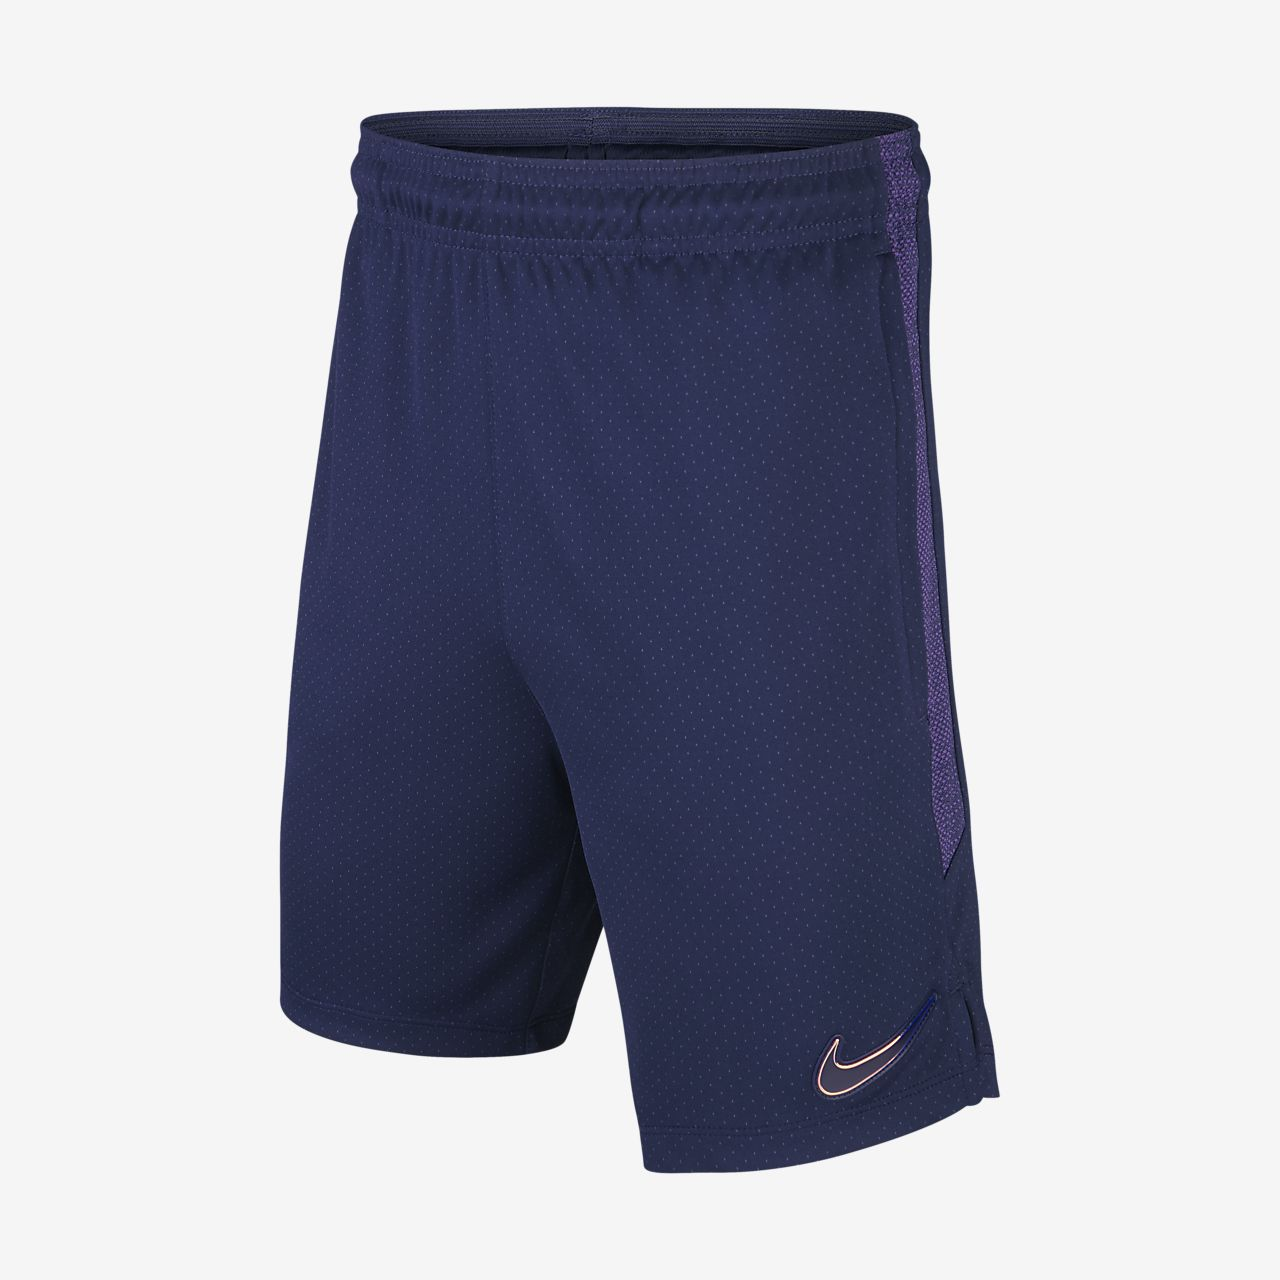 Nike Dri-FIT Tottenham Hotspur Strike Older Kids' Football Shorts